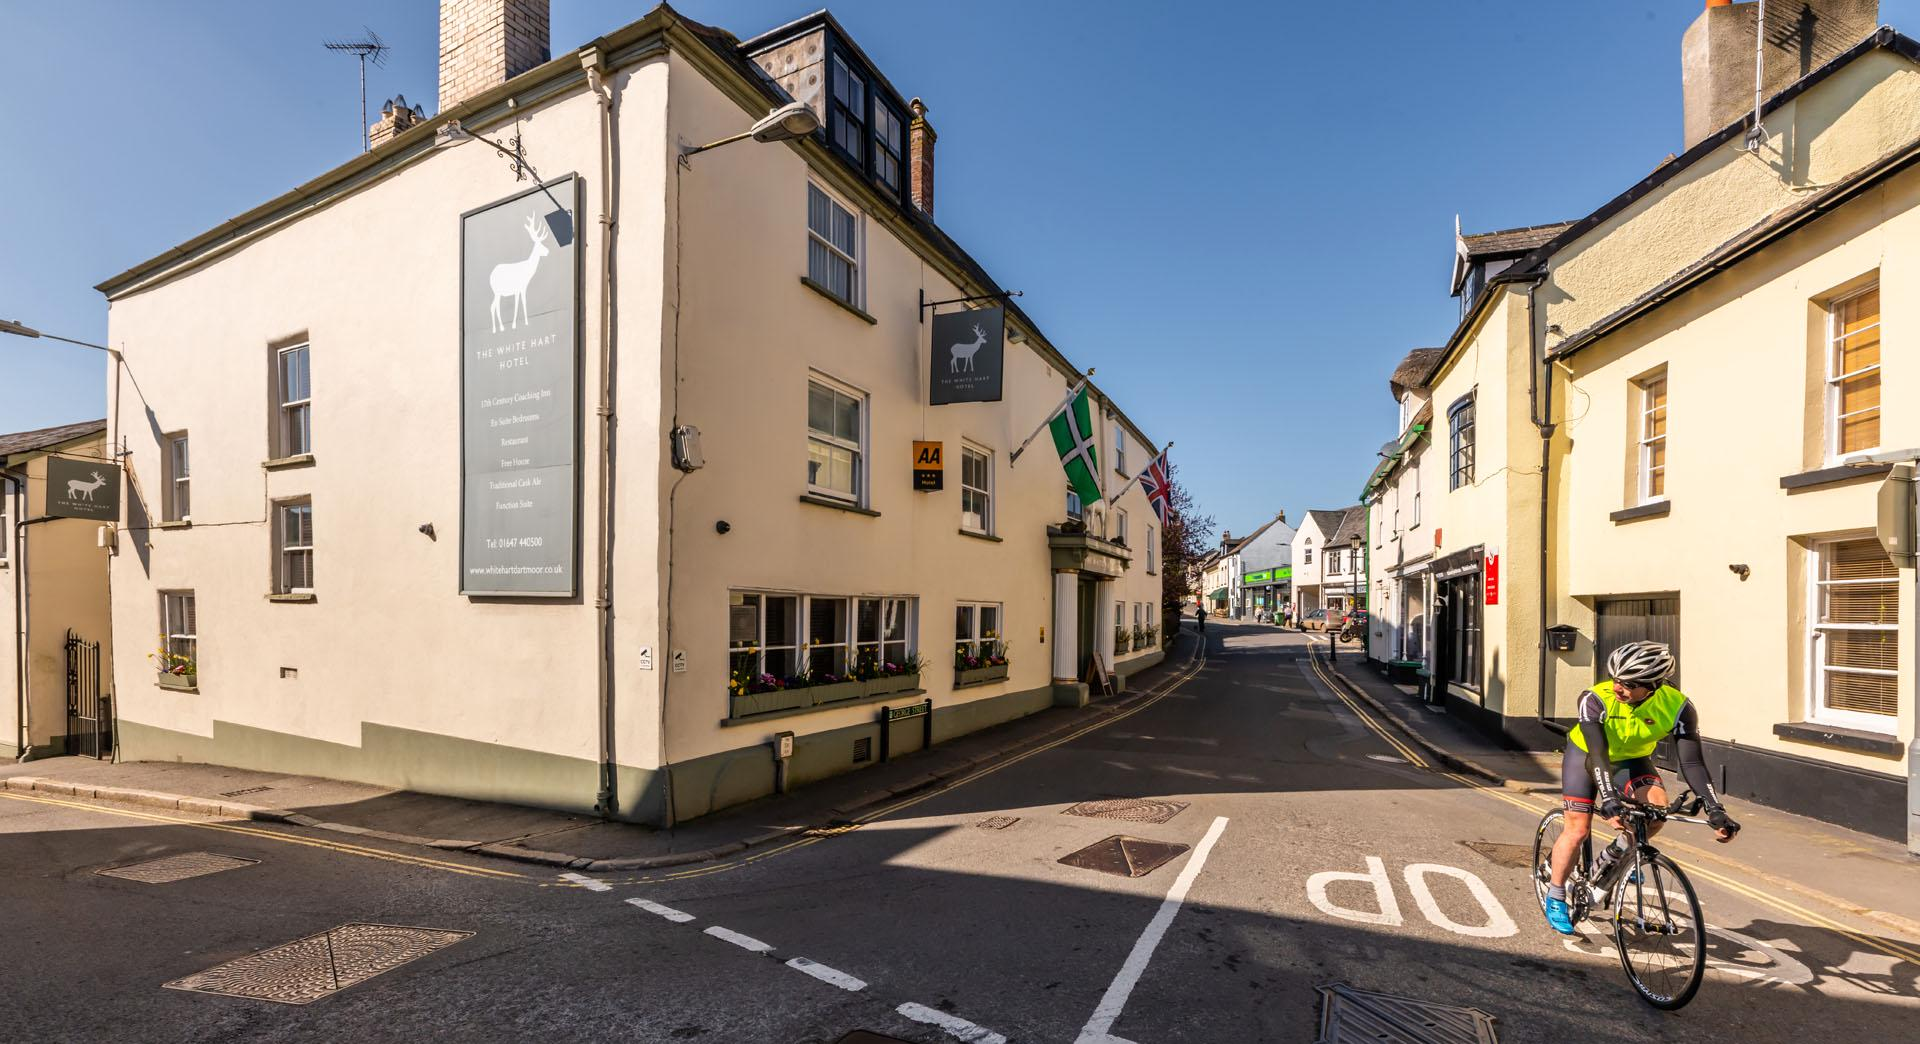 Hotels in Moretonhampstead holidays at Cool Places